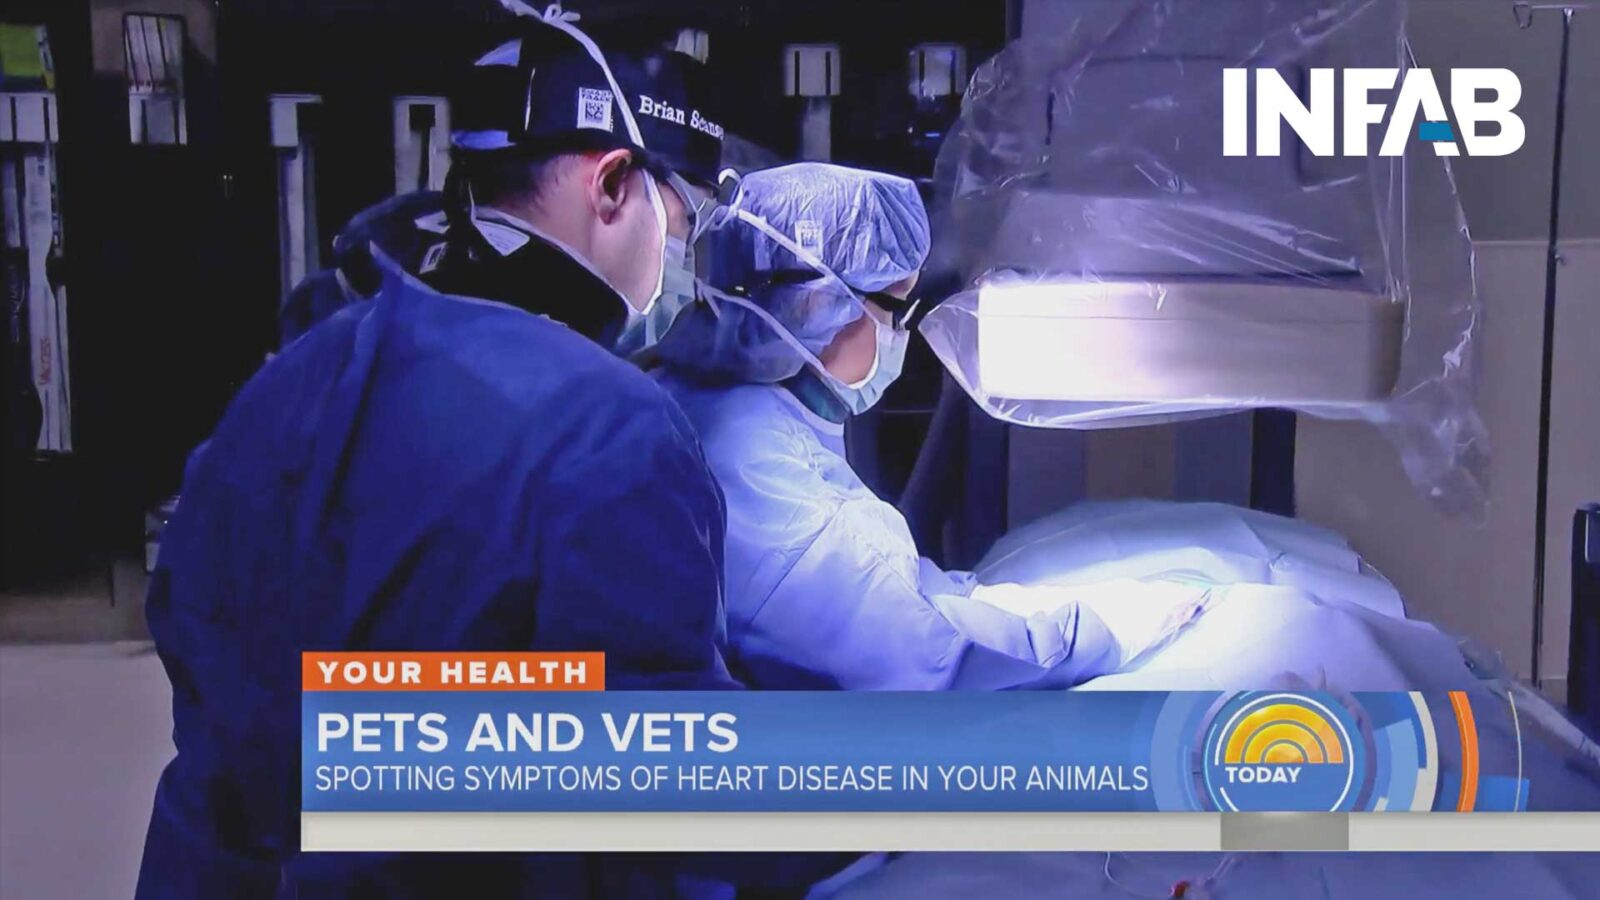 Vets Saving Dogs With Heart Disease Featured On TODAY Show With INFAB Protection